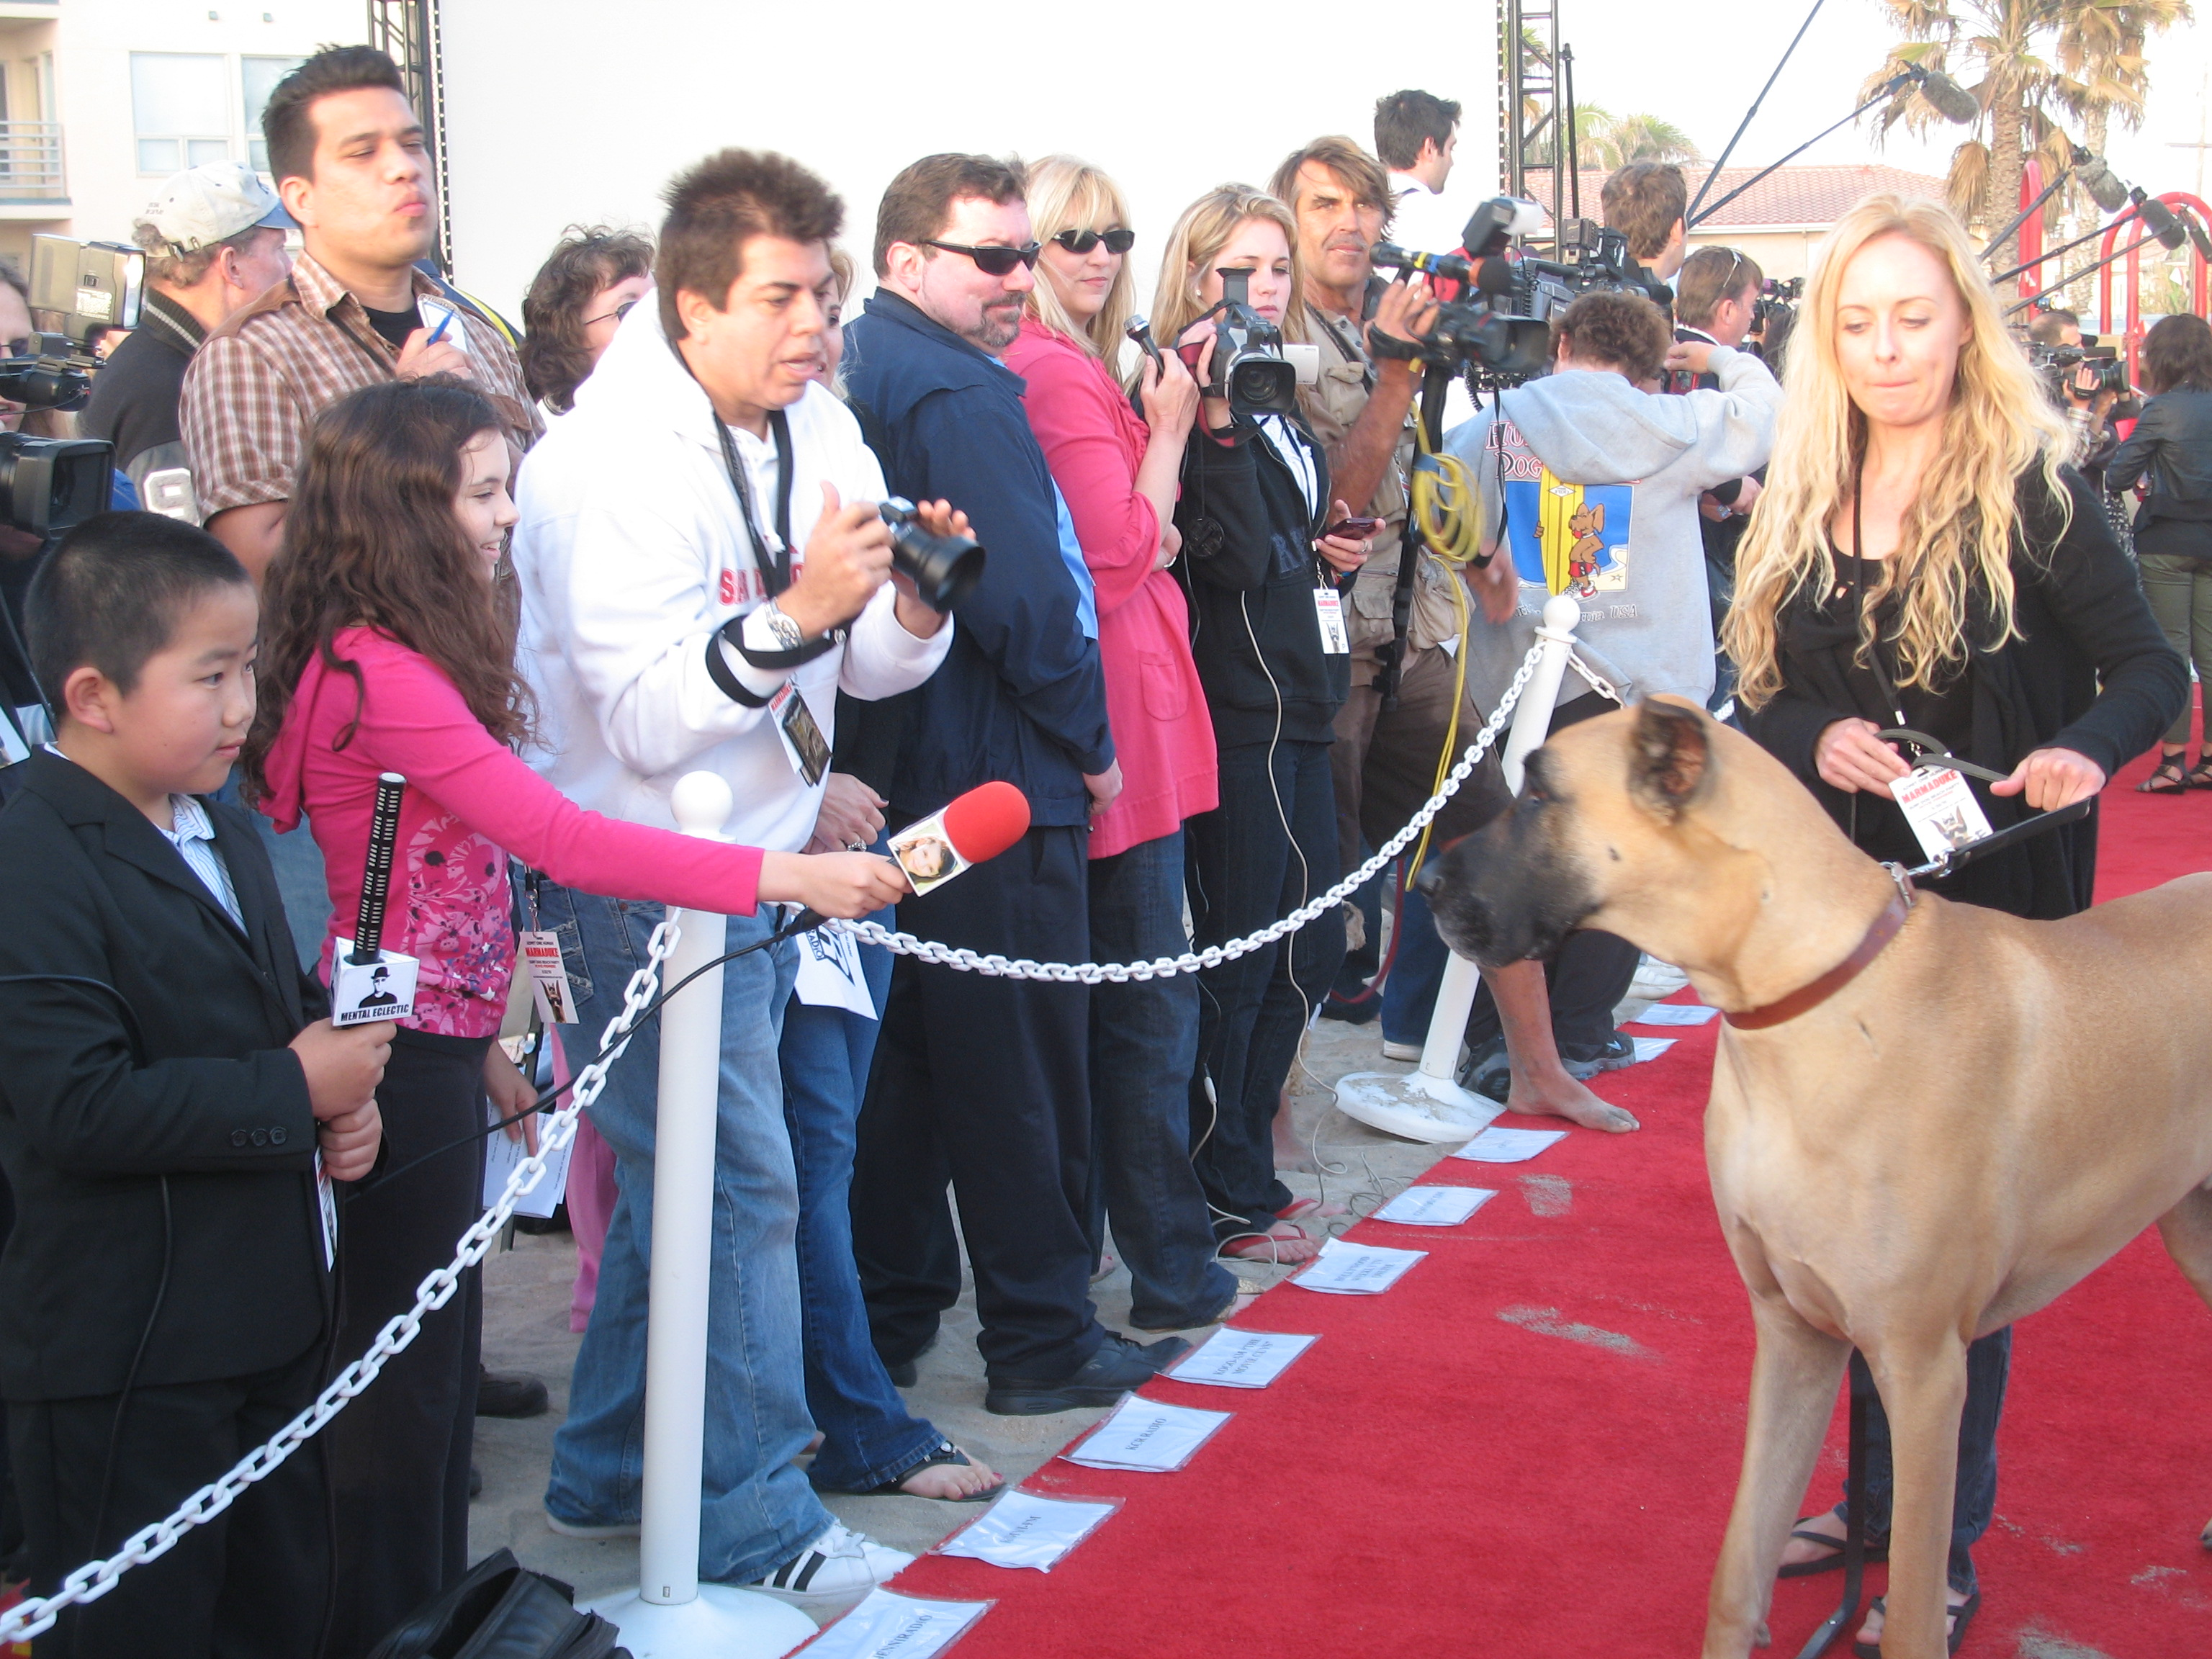 marmaduke dating site Brad anderson, creator of the 'marmaduke' cartoon strip that for more than 60 years featured the antics of a lovable great dane, has died he was 91.